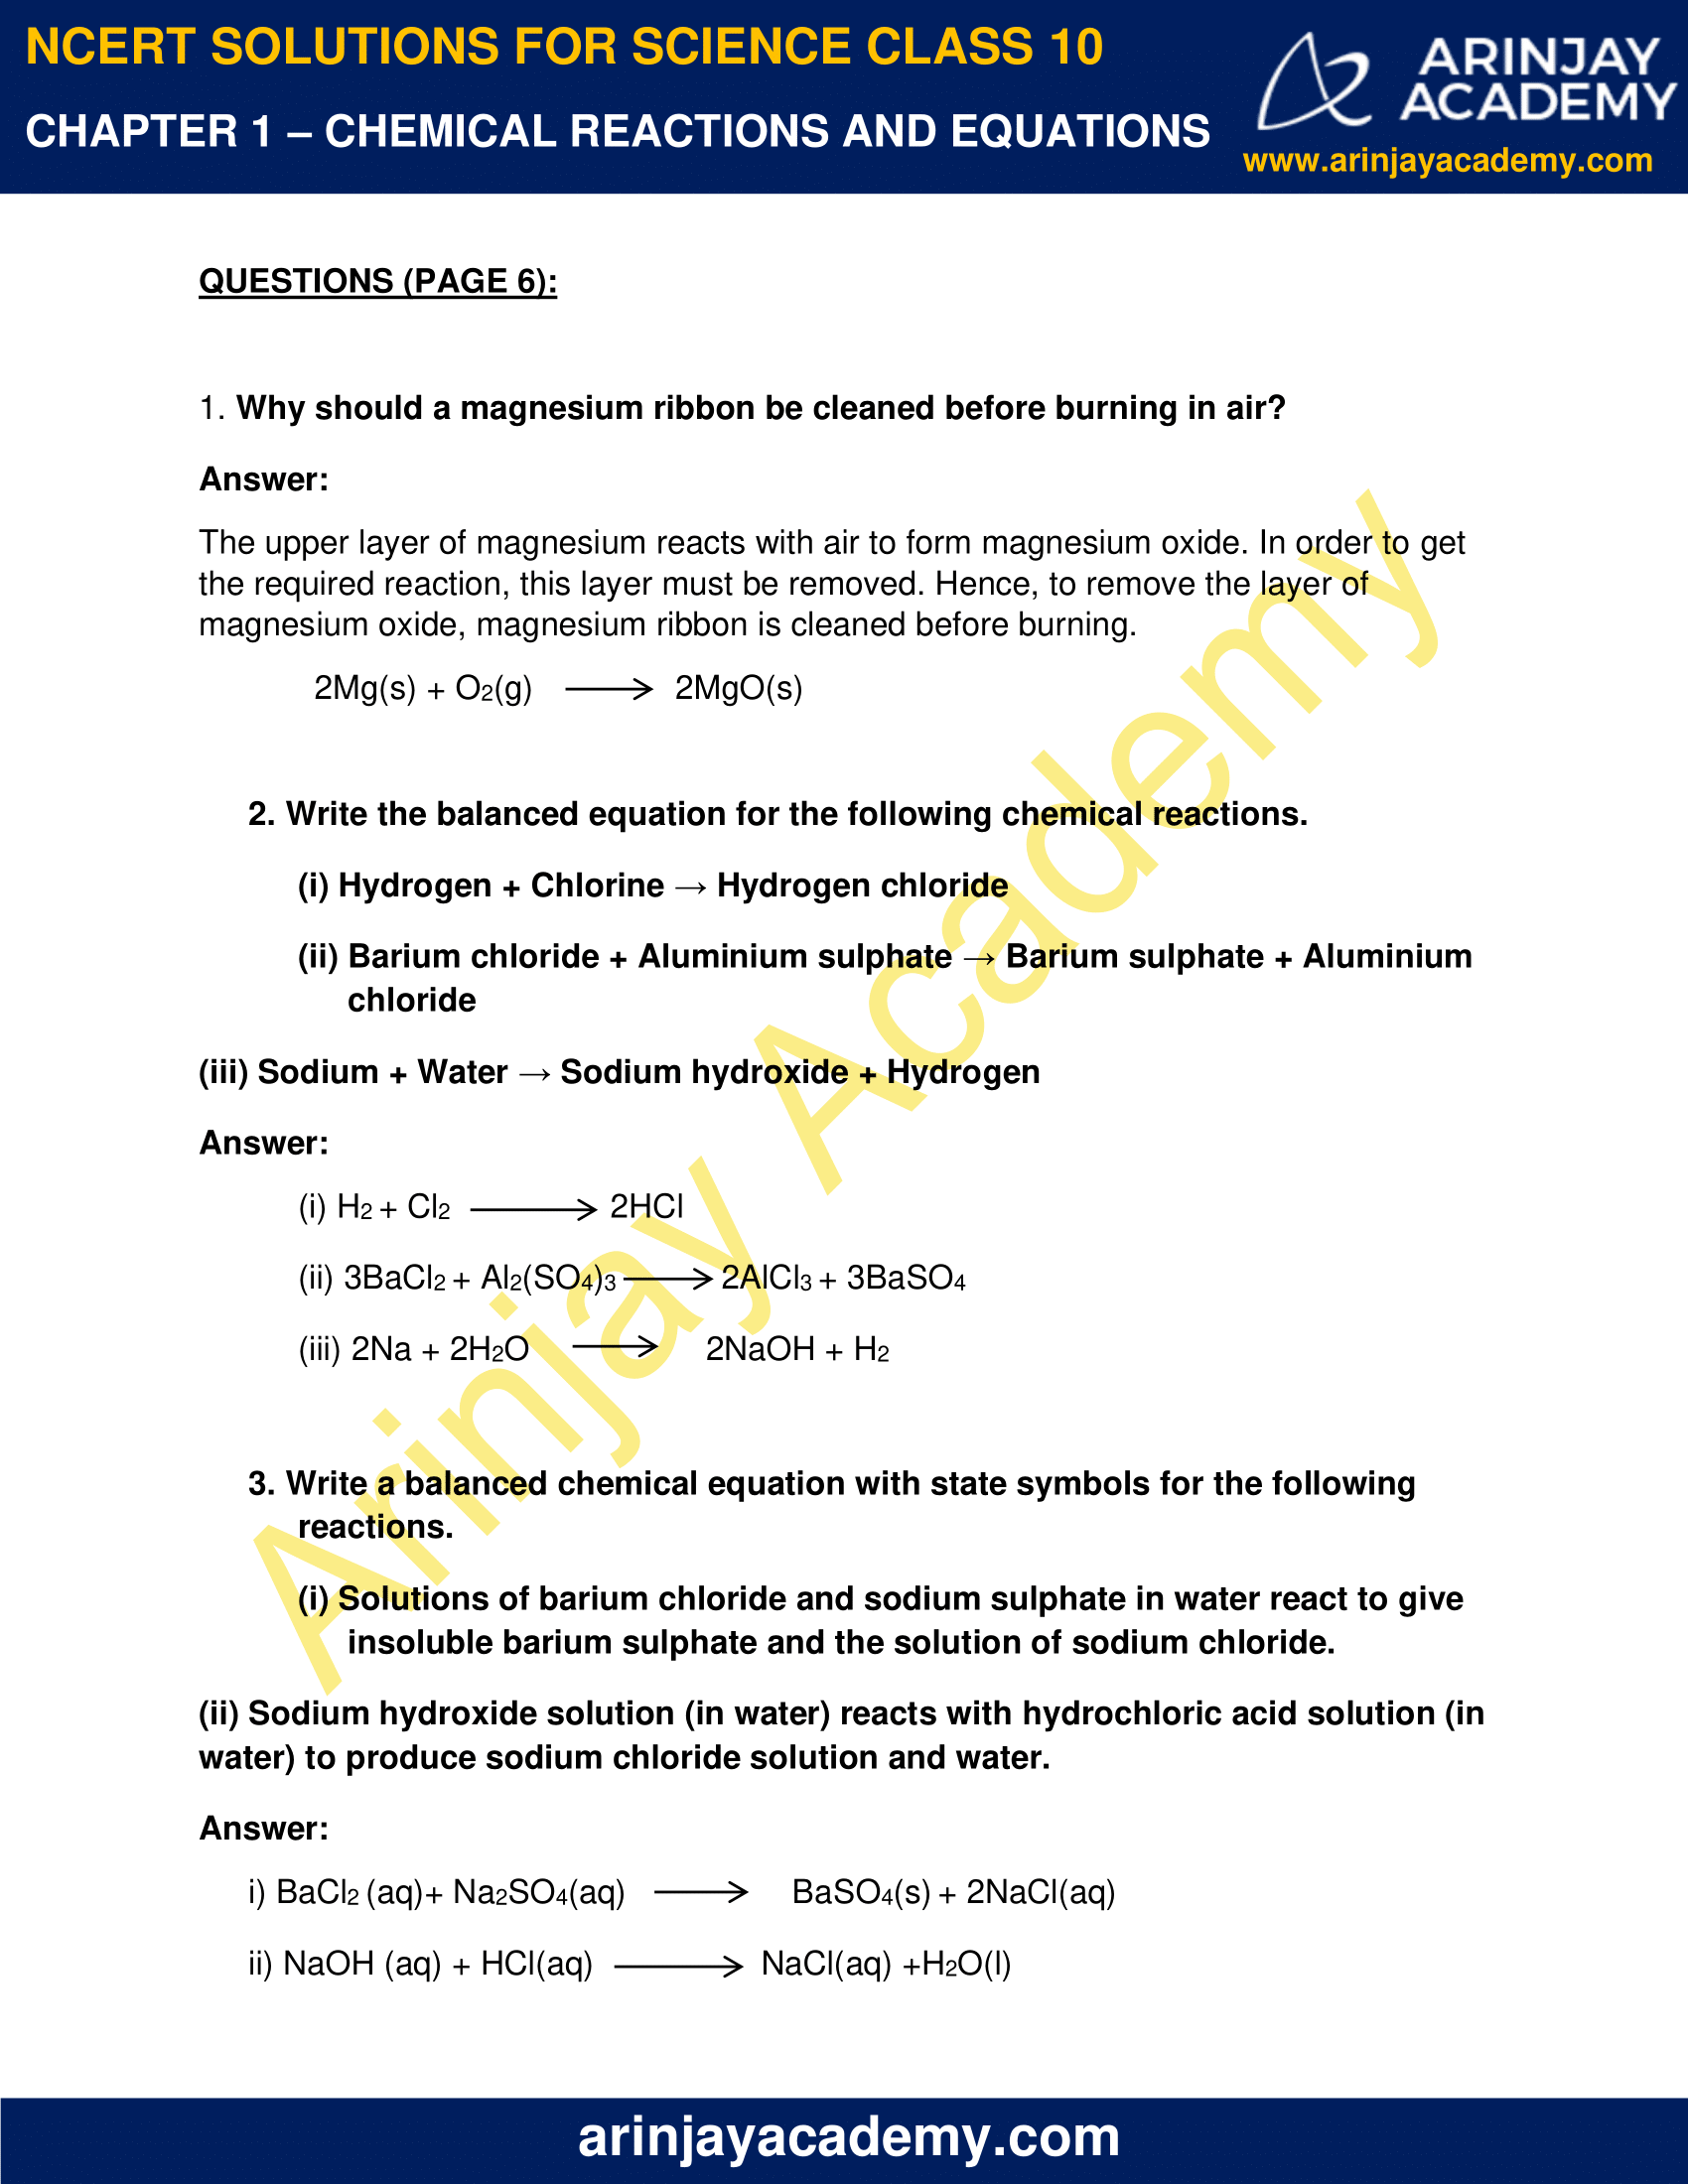 NCERT Solutions for Class 10 Science Chapter 1 image 1